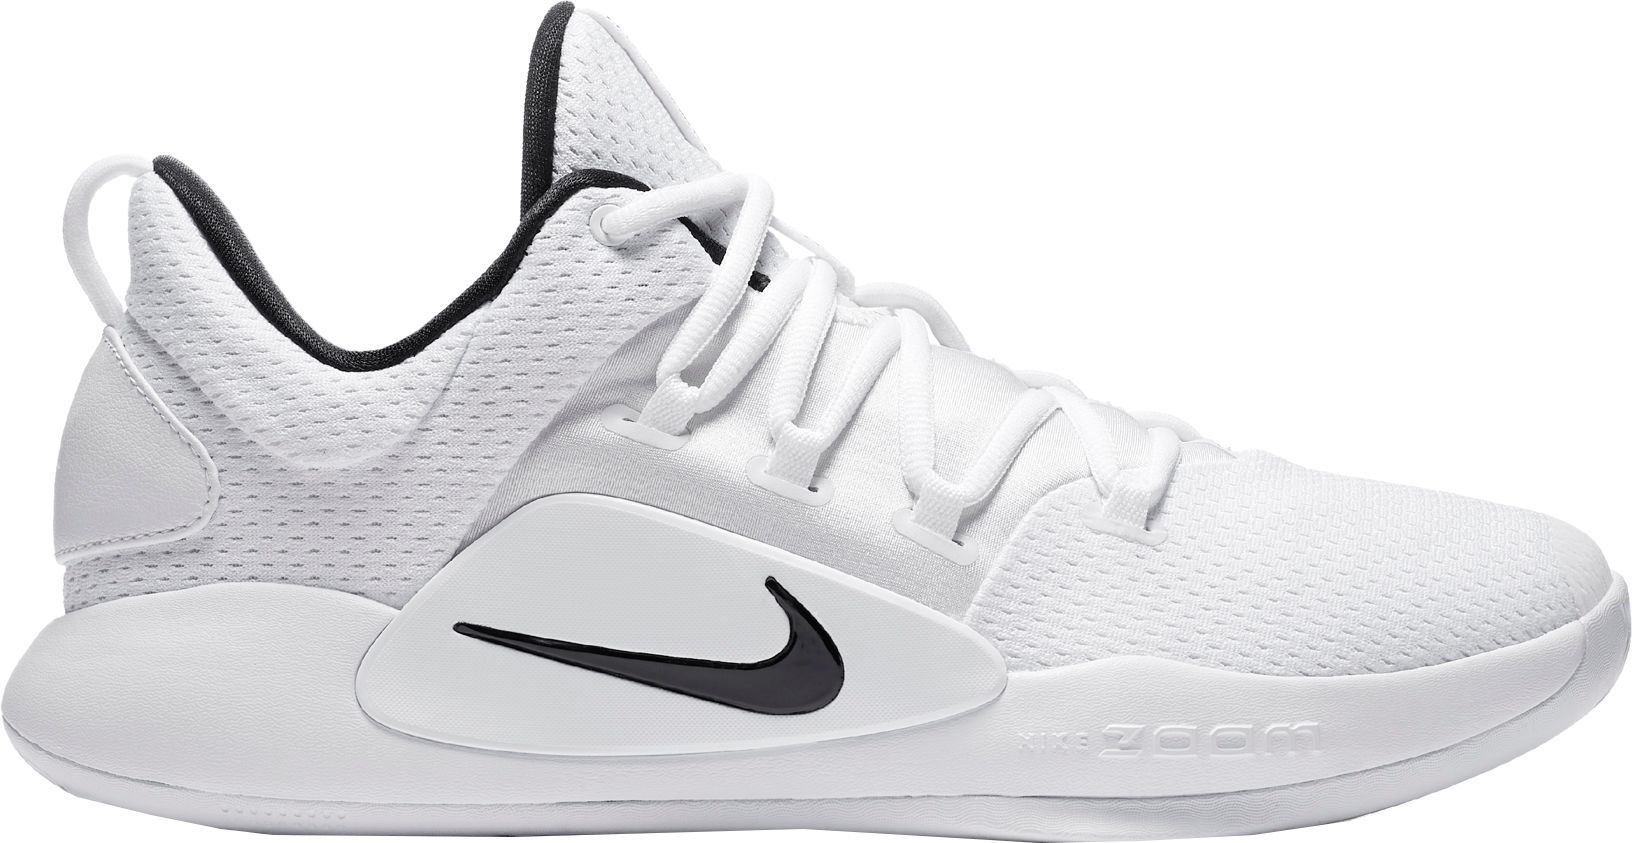 Nike Men's Hyperdunk X Low TB Basketball Shoes in 2019